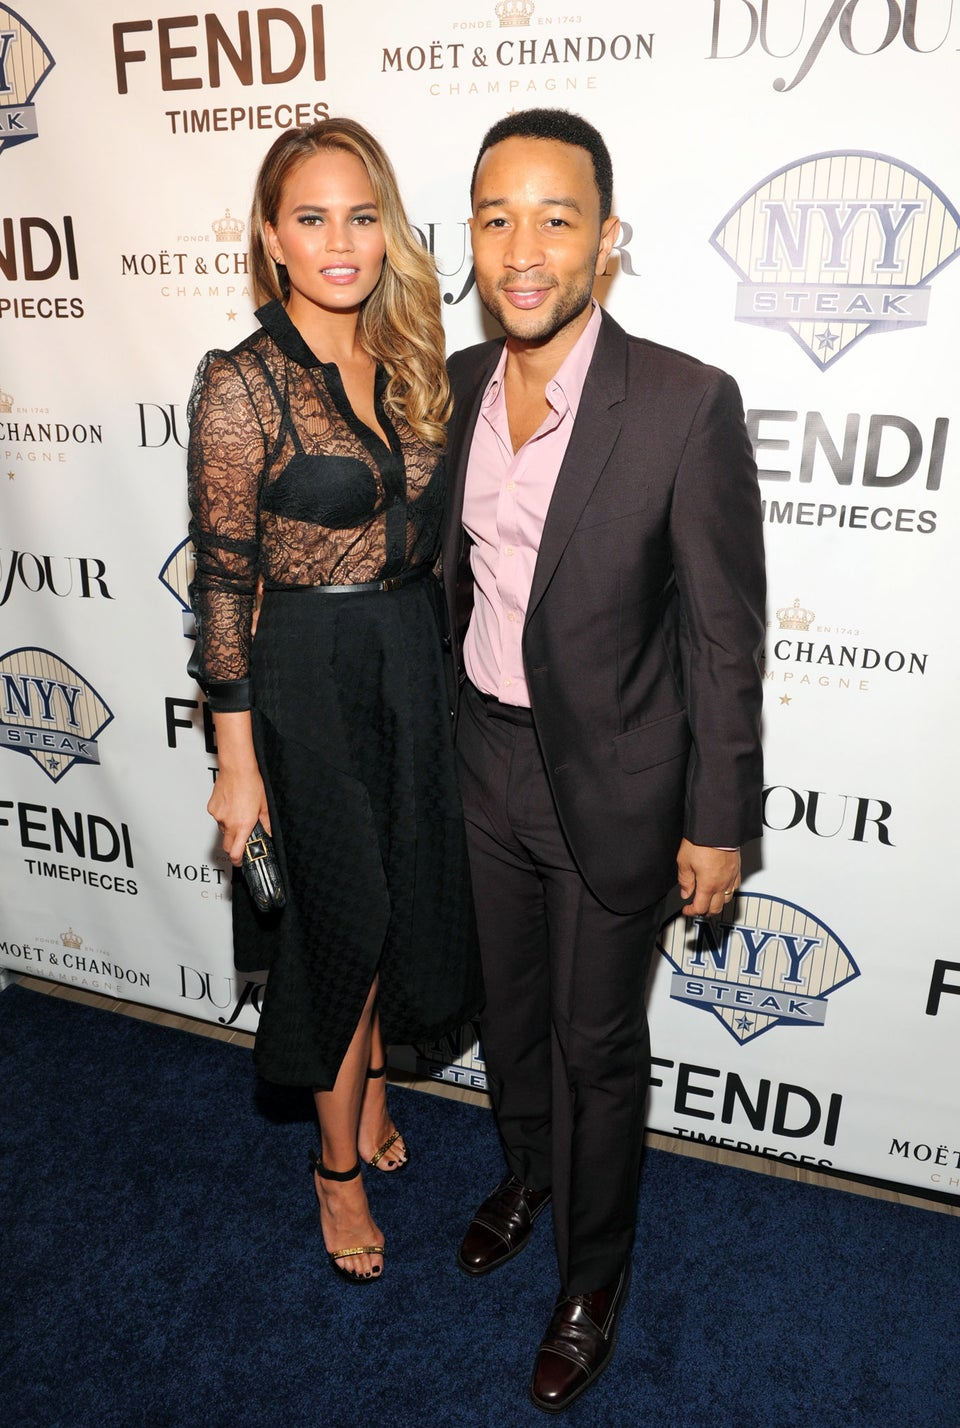 Coffee Talk: John Legend and Chrissy Teigen Hire Food Trucks to Feed NYC Protesters